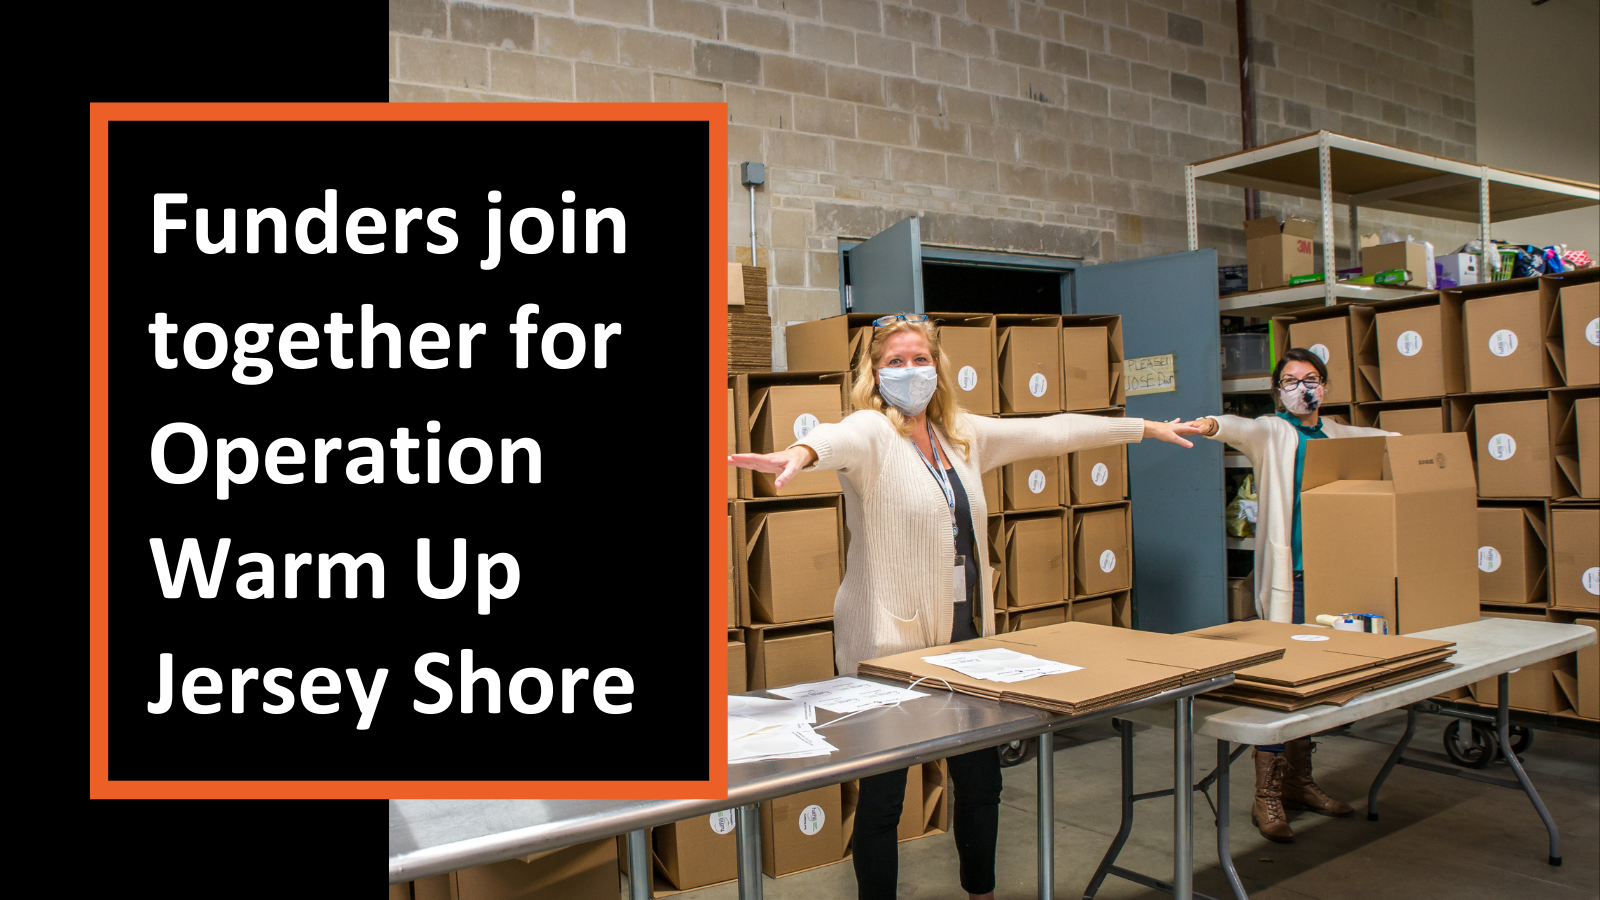 Funders Join Together for Operation Warm Up Jersey Shore